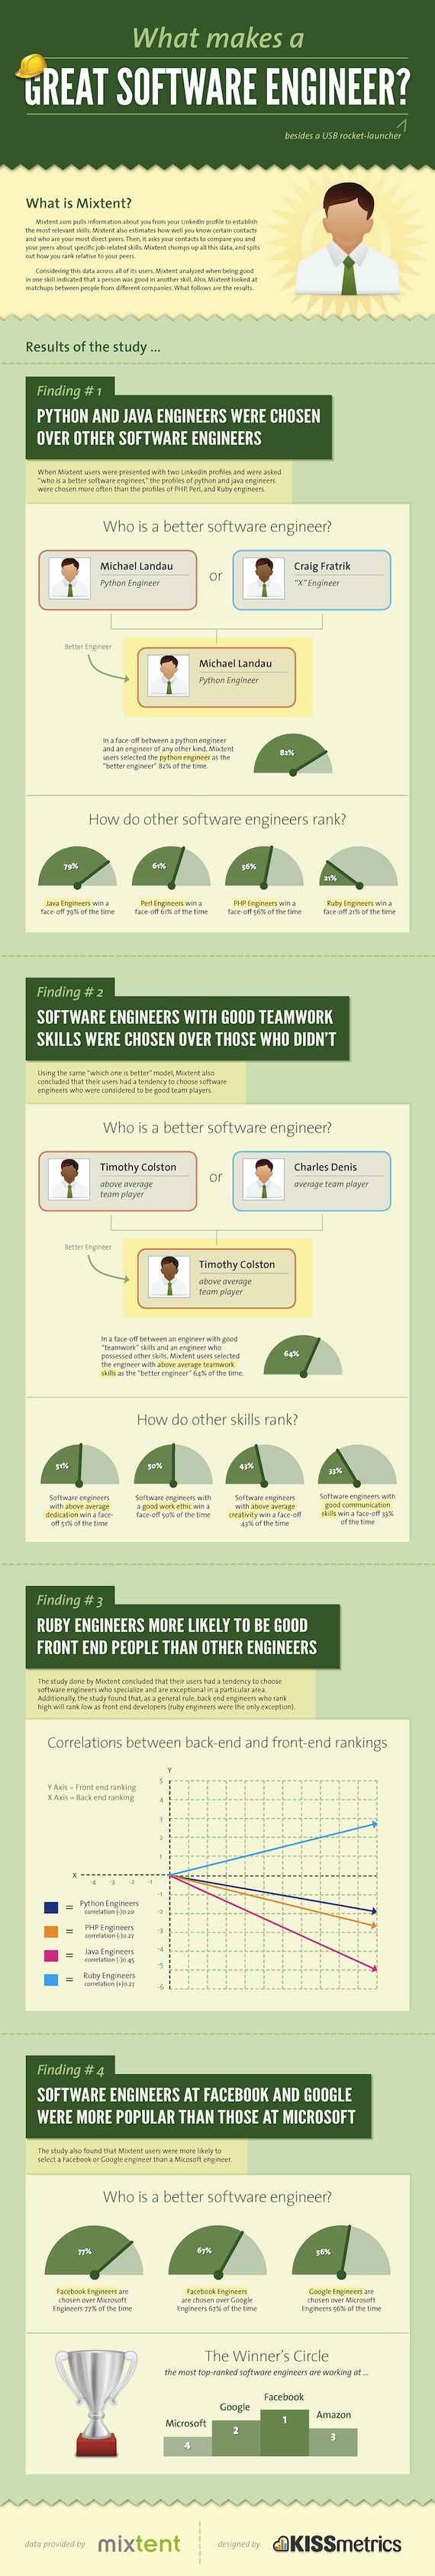 What makes a great software engineer? [infographic] http://blog.kissmetrics.com/software-engineer/